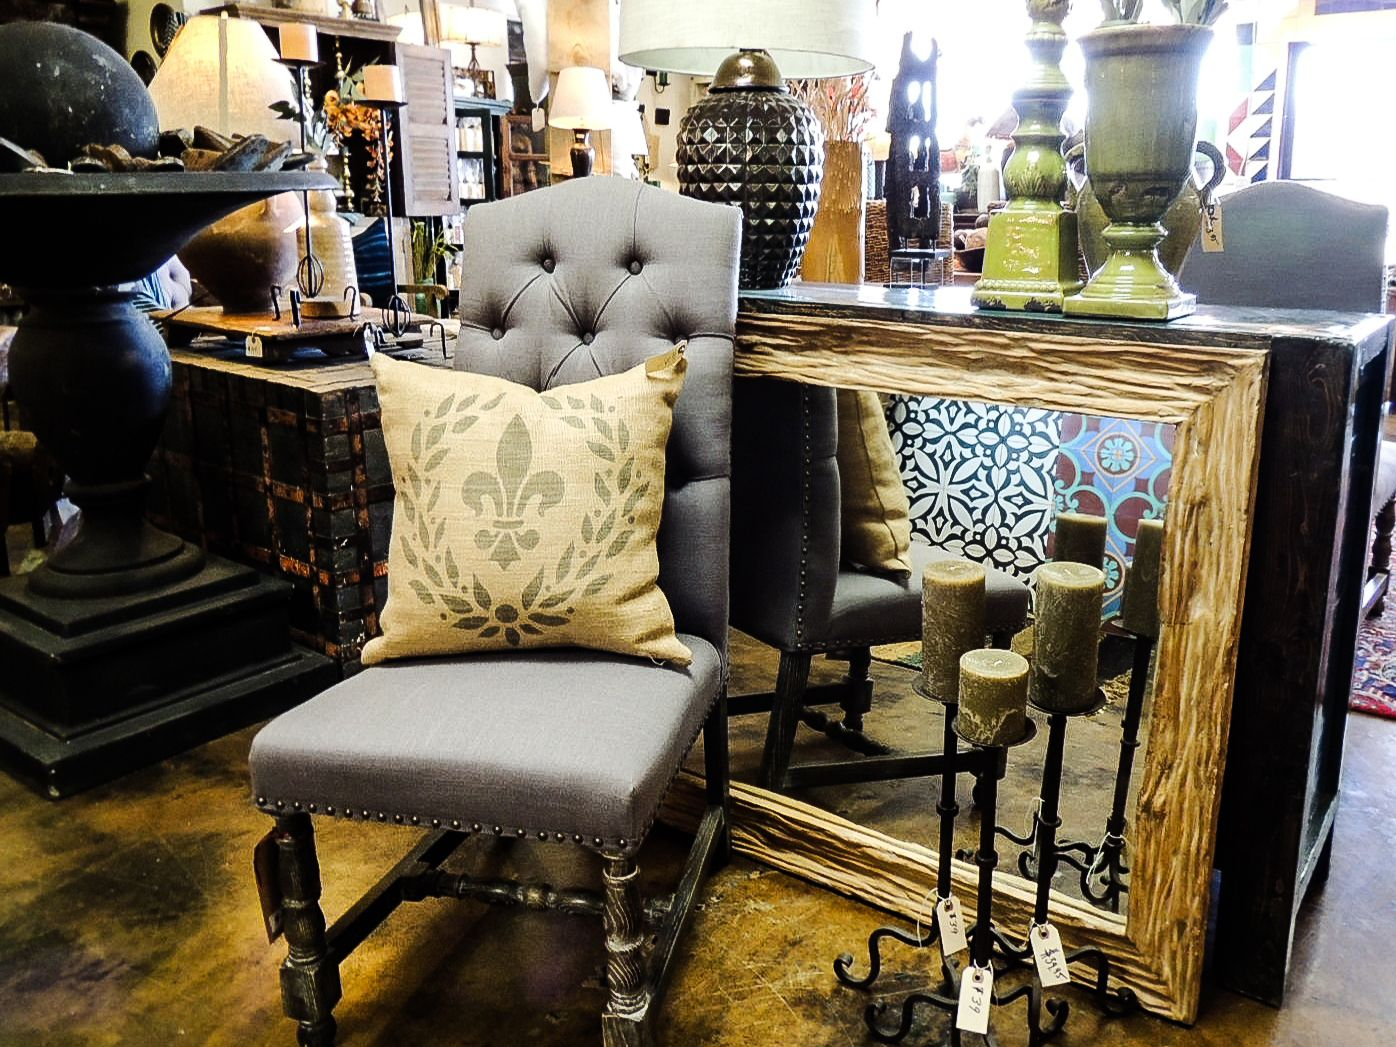 High Quality Furniture, Candles, Accessories! #furniture #candles #accessories #luxury # Chairs #mirrors #pillows #gifts #giftstore #Phoenix #Arizona #rustic  #global ...